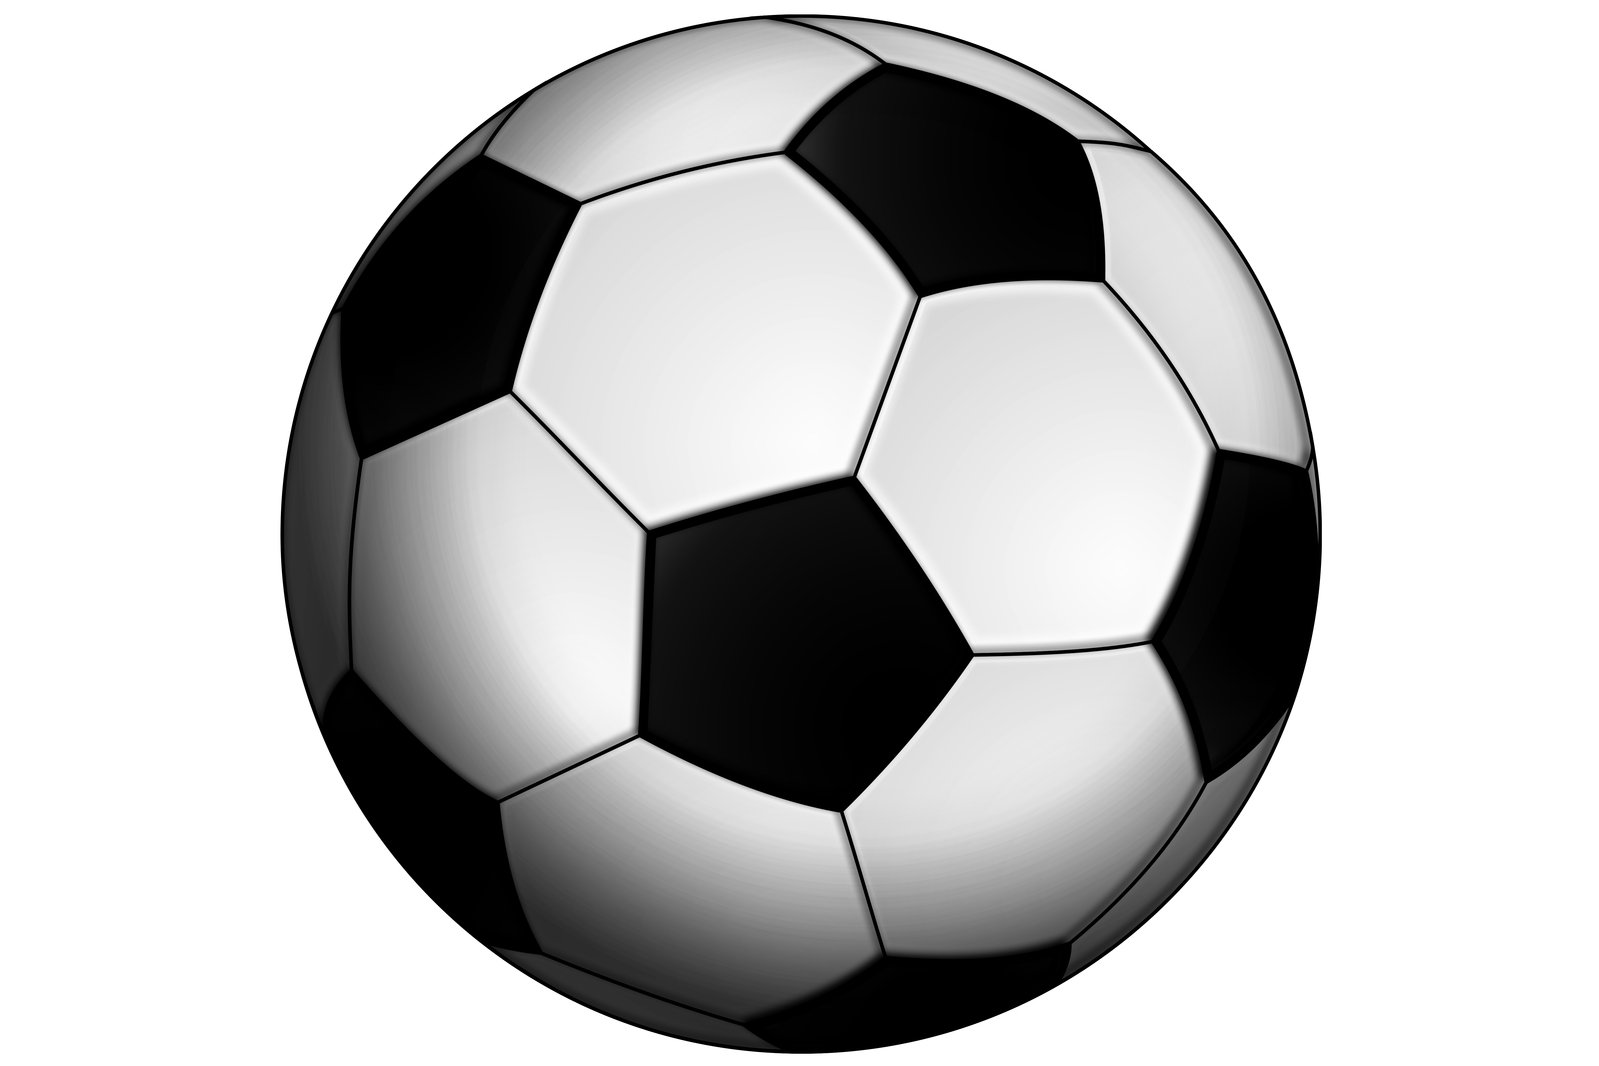 It is a picture of Playful Bola De Soccer